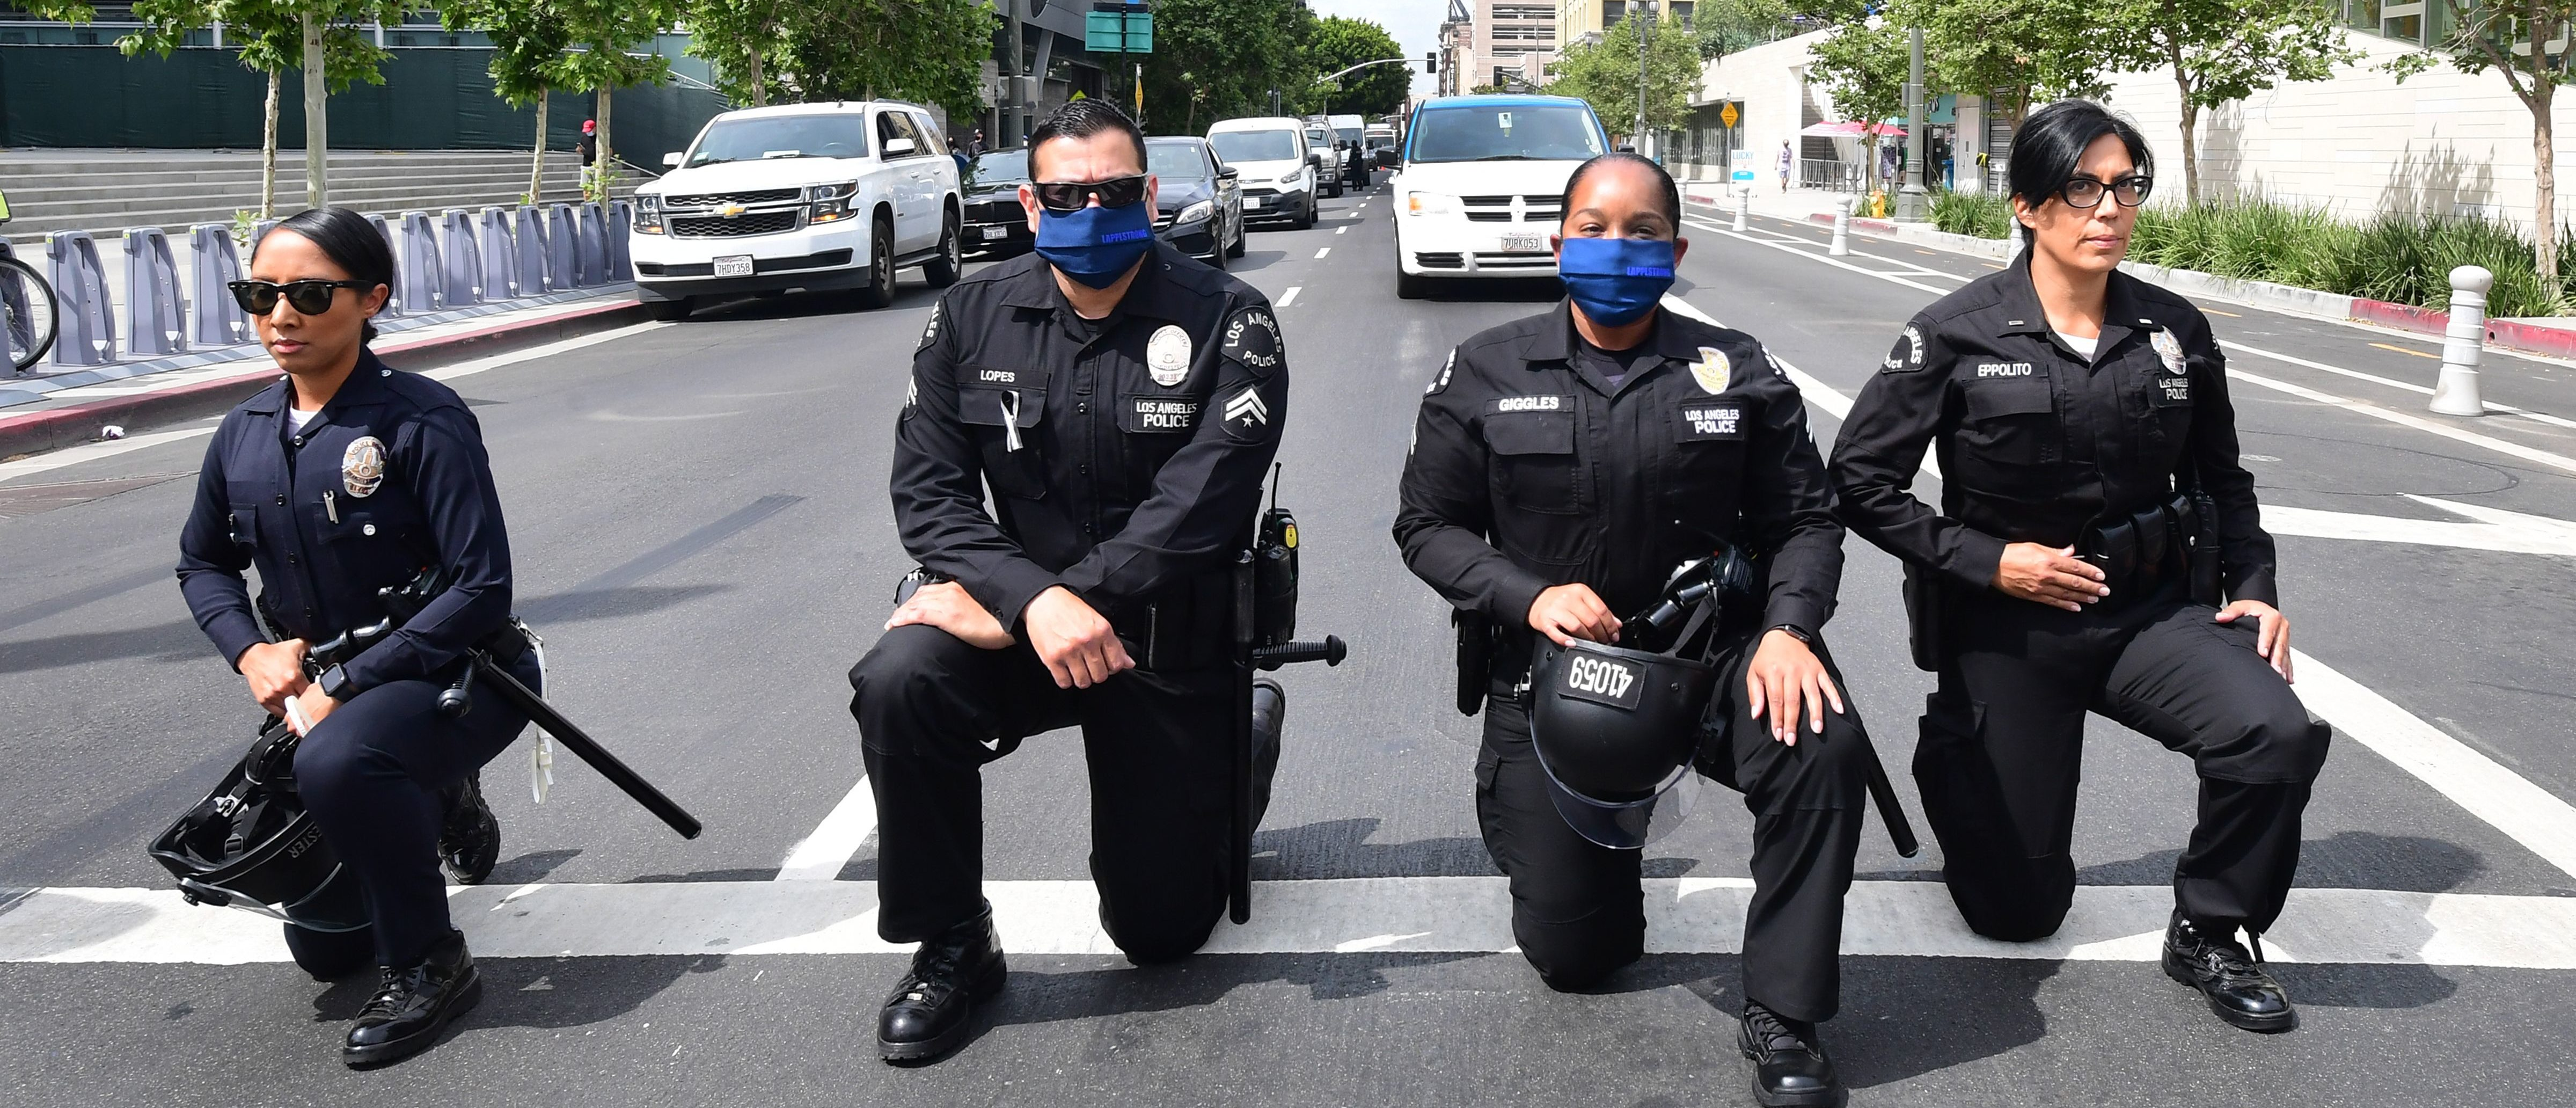 TOPSHOT - Los Angeles Police Department officers kneel during a rally led by Baptist Ministers to City Hall on June 2, 2020 in memory of George Floyd. - Anti-racism protests have put several US cities under curfew to suppress rioting, following the death of George Floyd while in police custody. (Photo by Frederic J. BROWN / AFP) (Photo by FREDERIC J. BROWN/AFP via Getty Images)